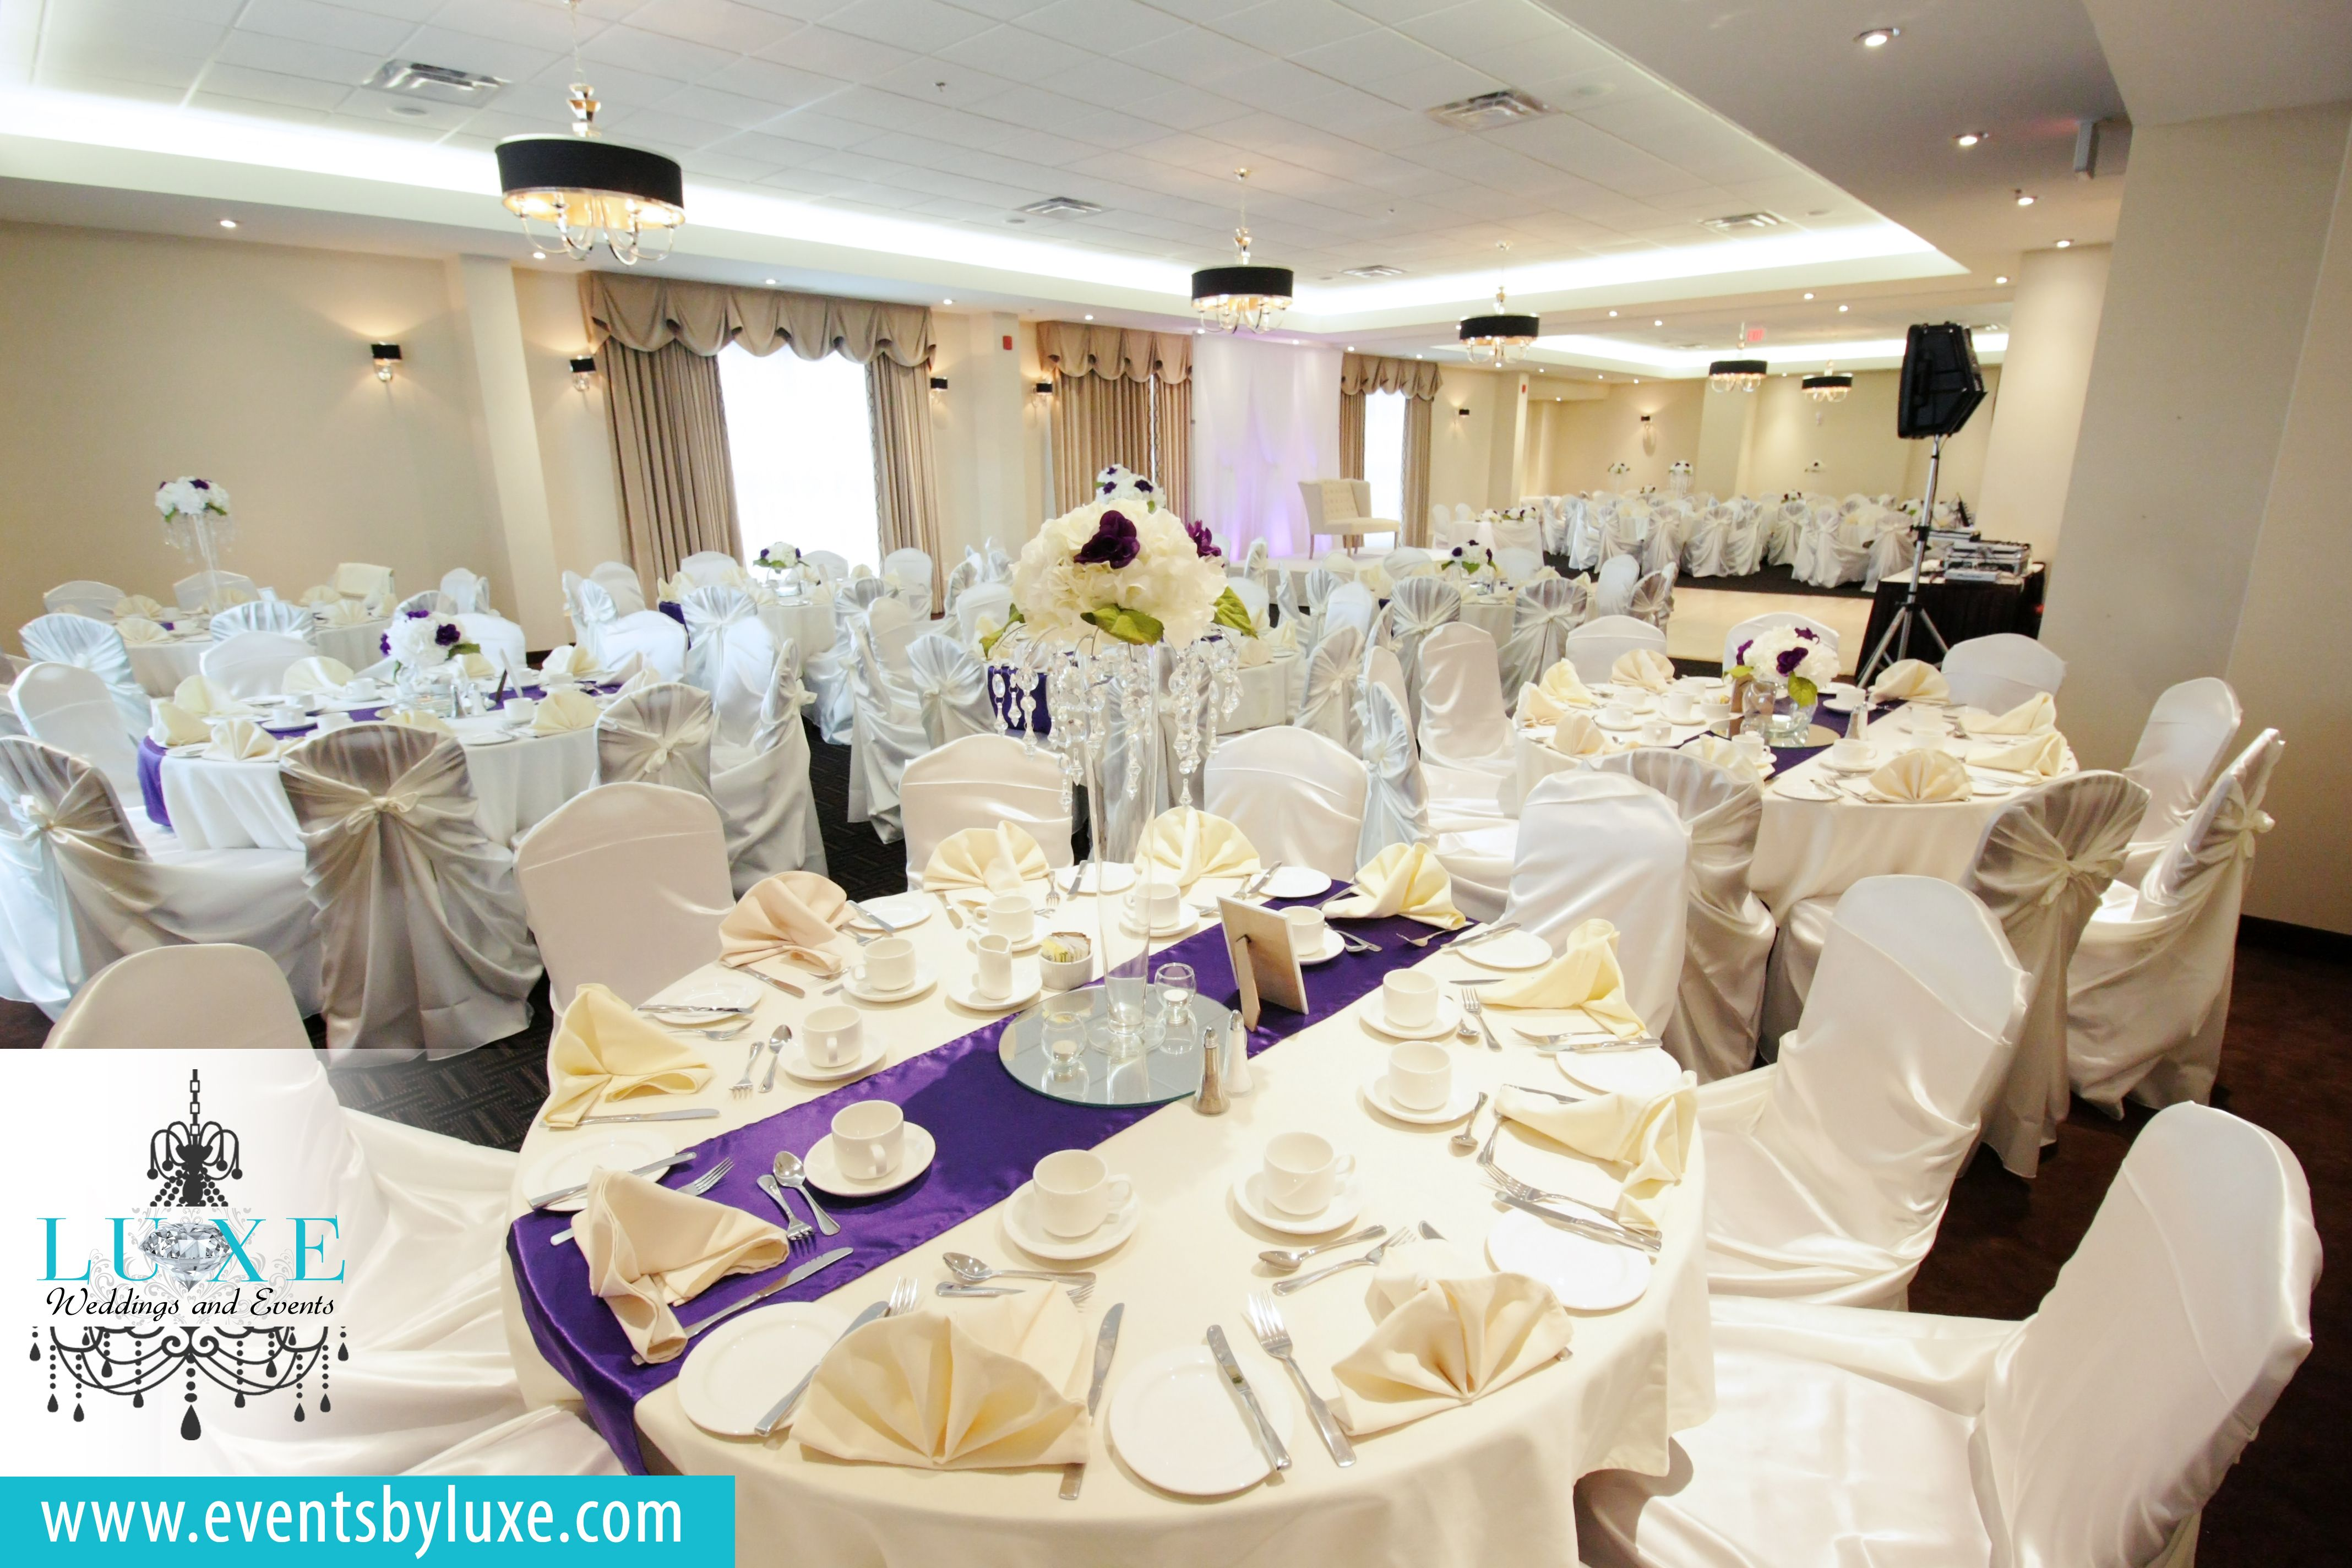 favs stunning wedding my decor some decorations dark and navy purple awesome new of styles table lavender ideas scape